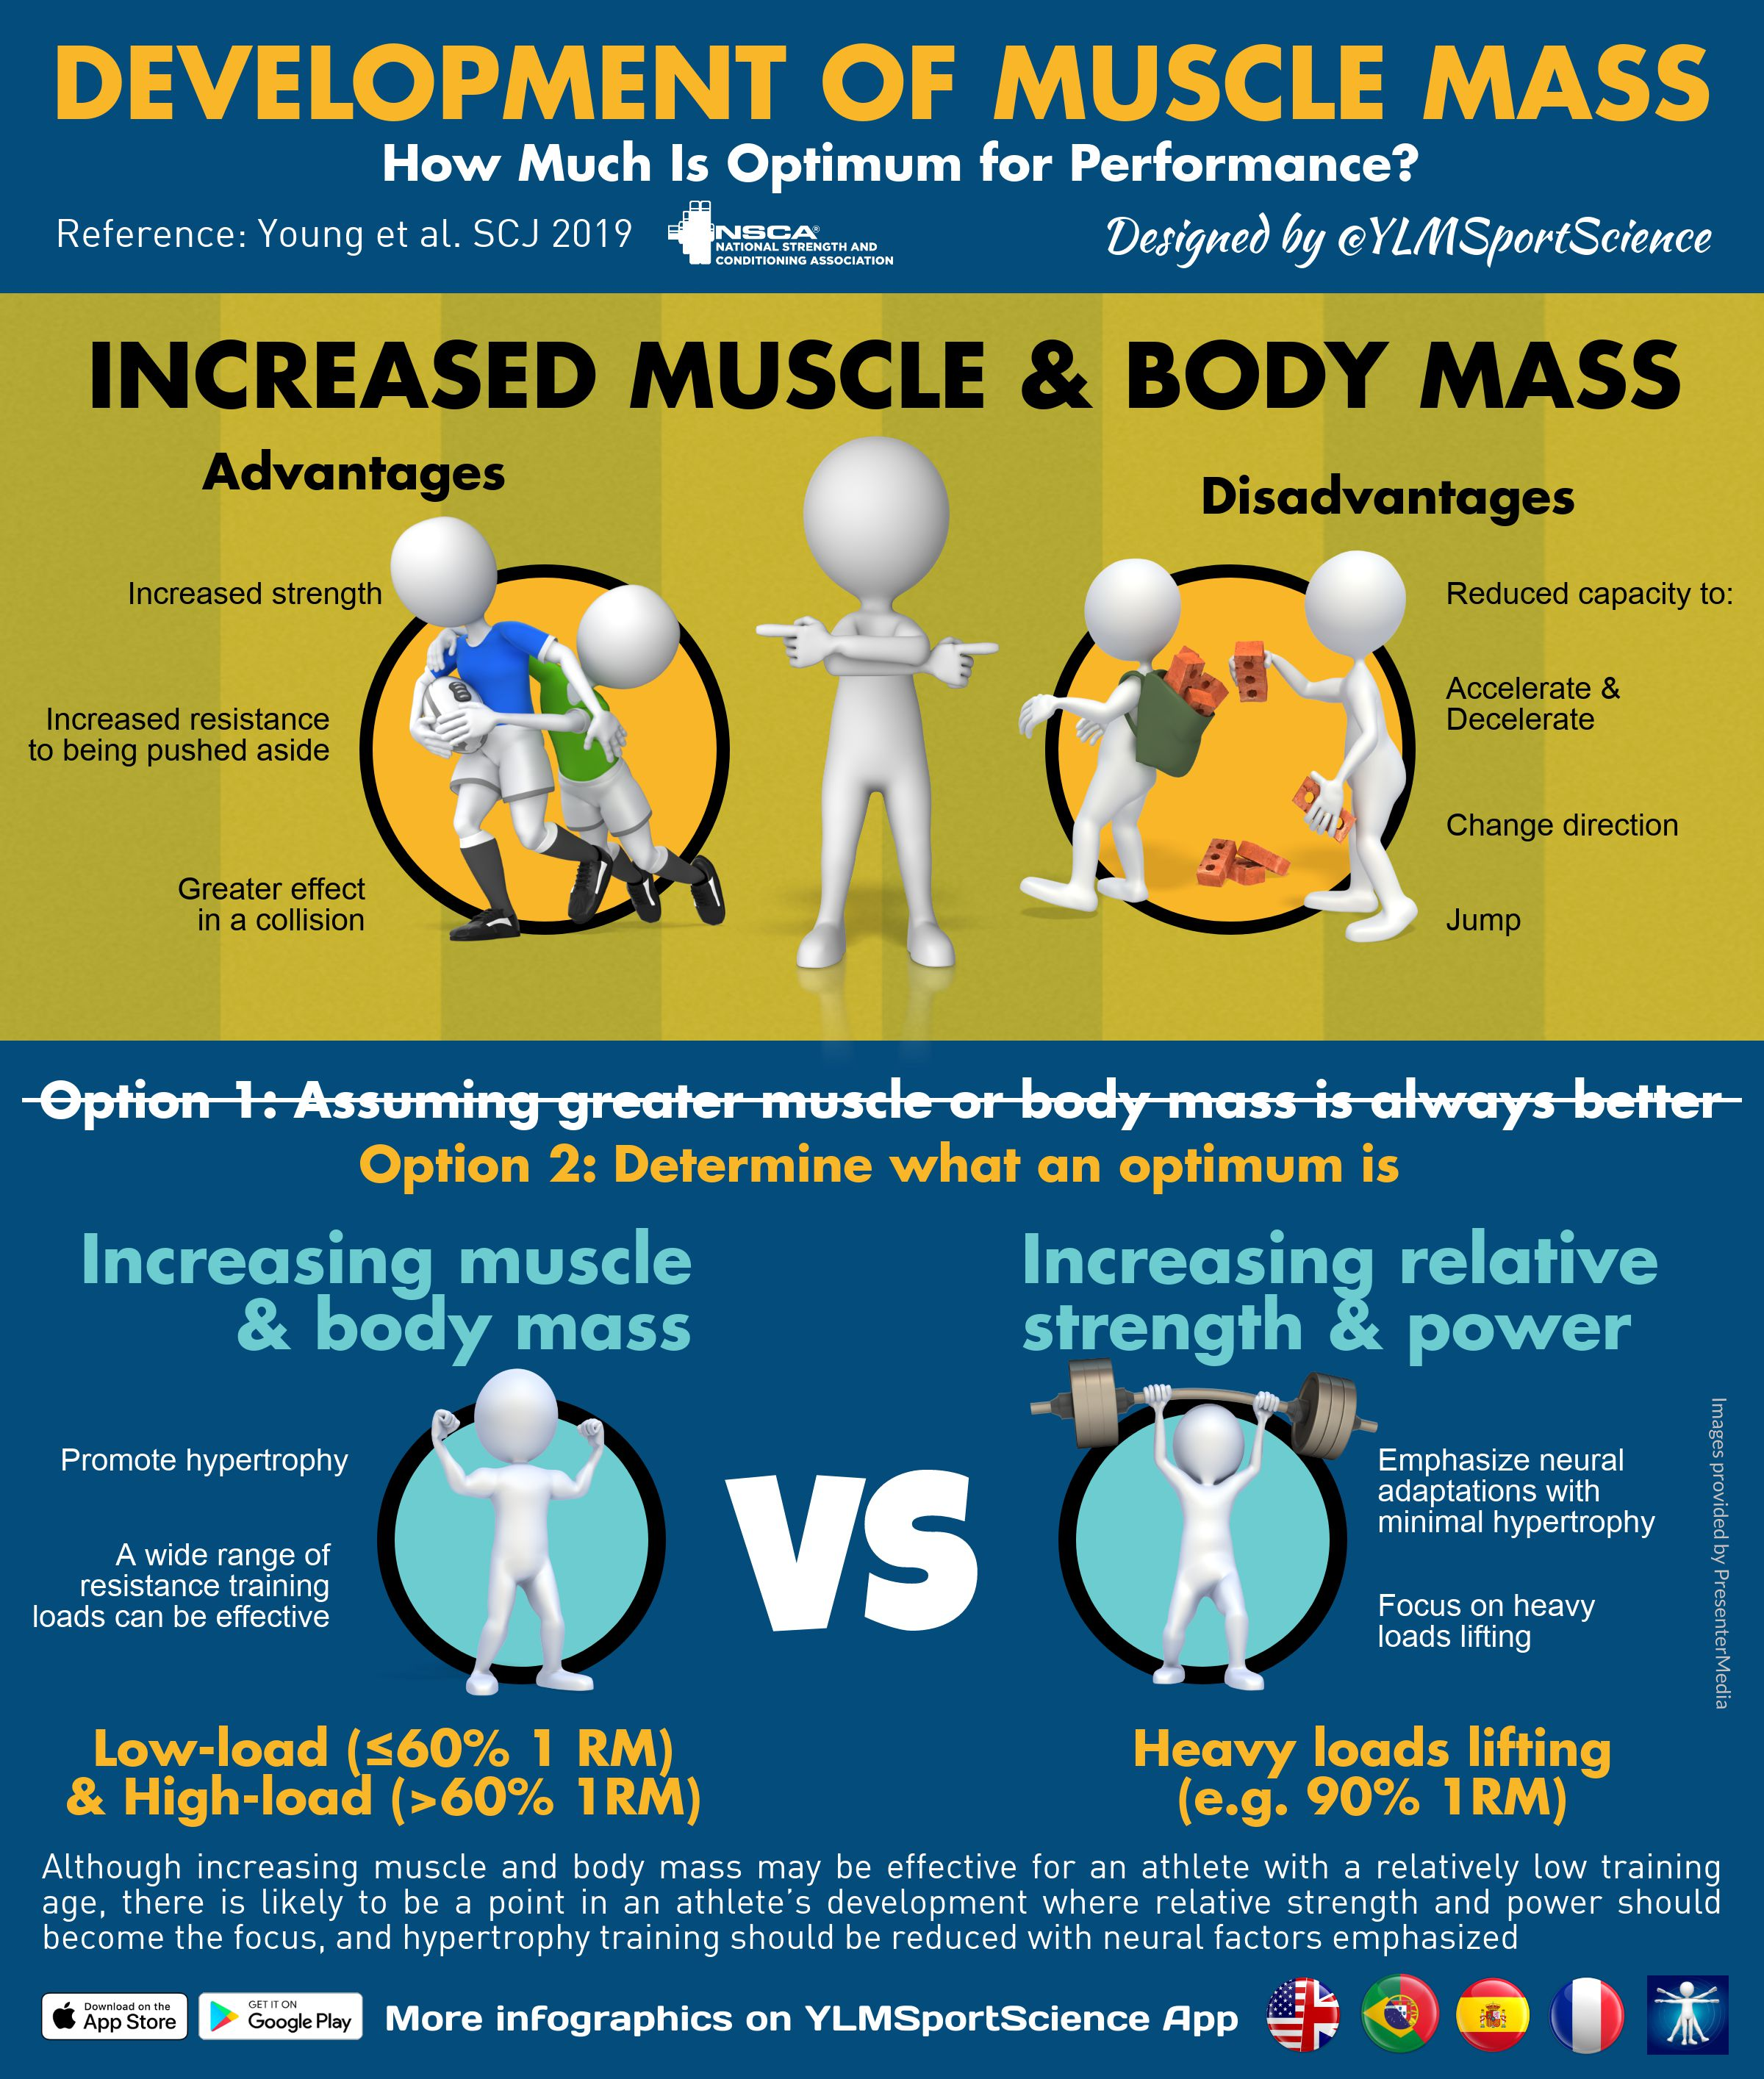 This infographic highlights differences between hypertrophic gains and neural adaptations for optimal athletic performance.